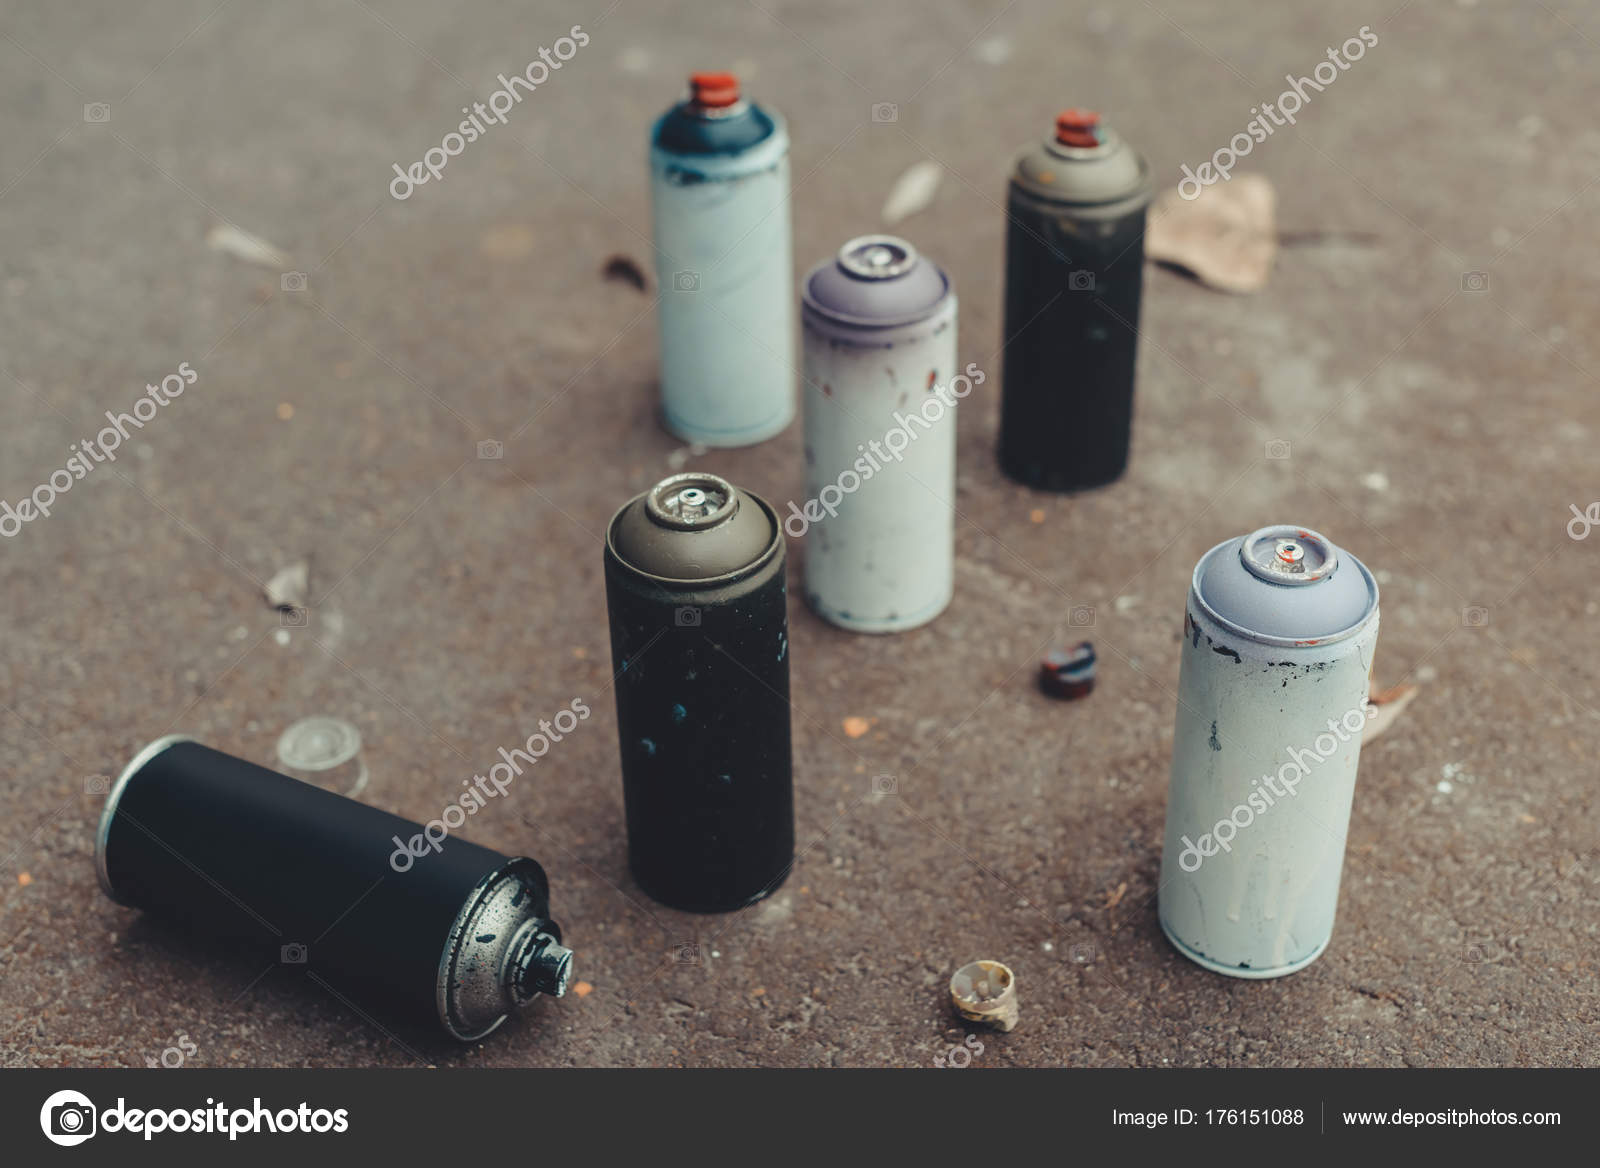 Cans With Colorful Spray Paint For Graffiti On Asphalt Photo By Viktoriasapata